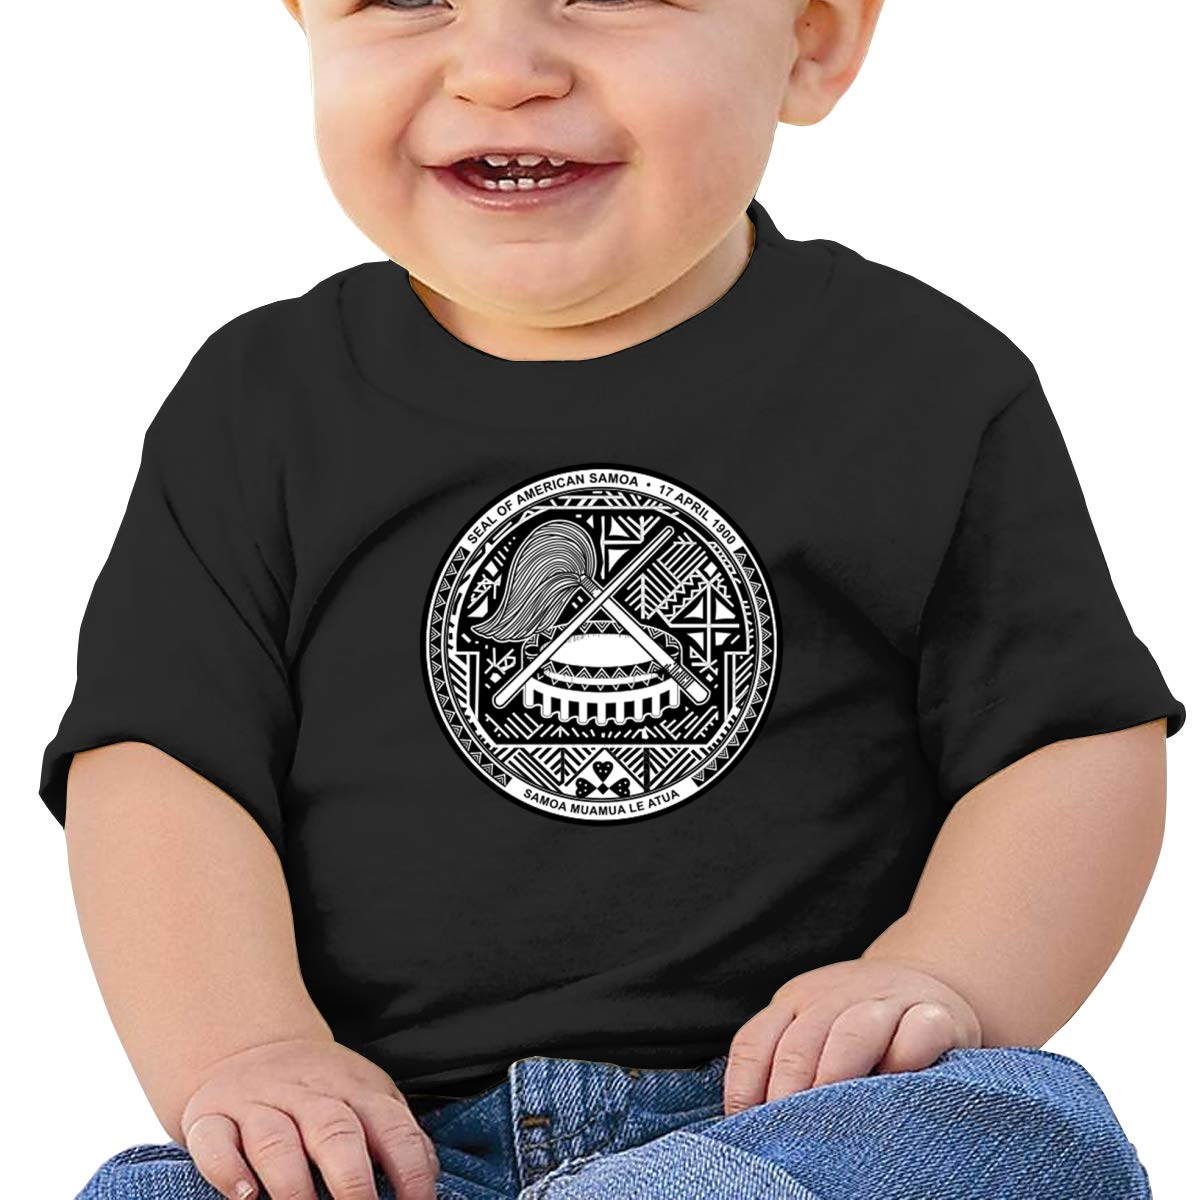 JVNSS Seal of American Samoa Baby T-Shirt Toddler Cotton T Shirts Cartoon Cotton Tops for 6M-2T Baby